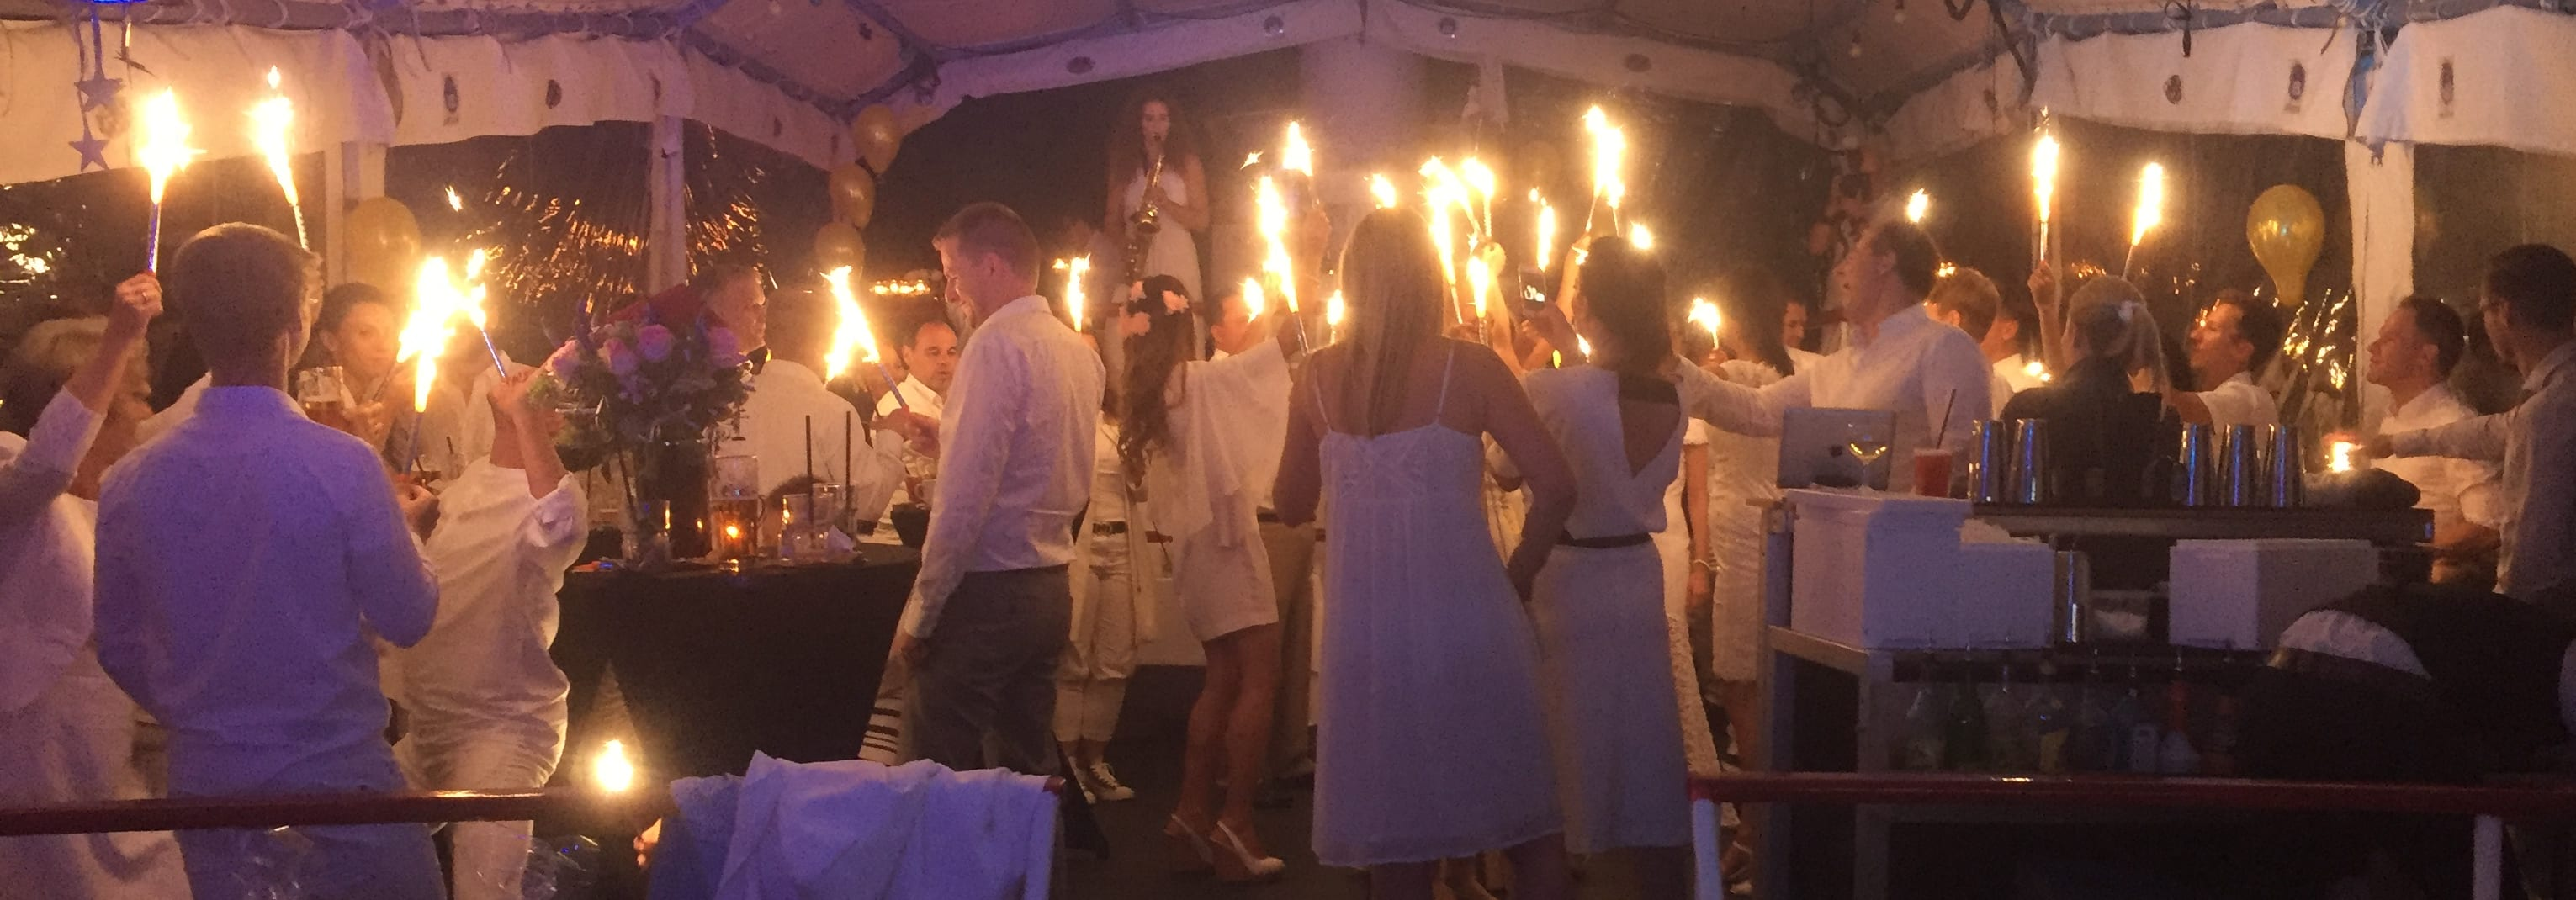 Whiteboat Party am Starnberger See